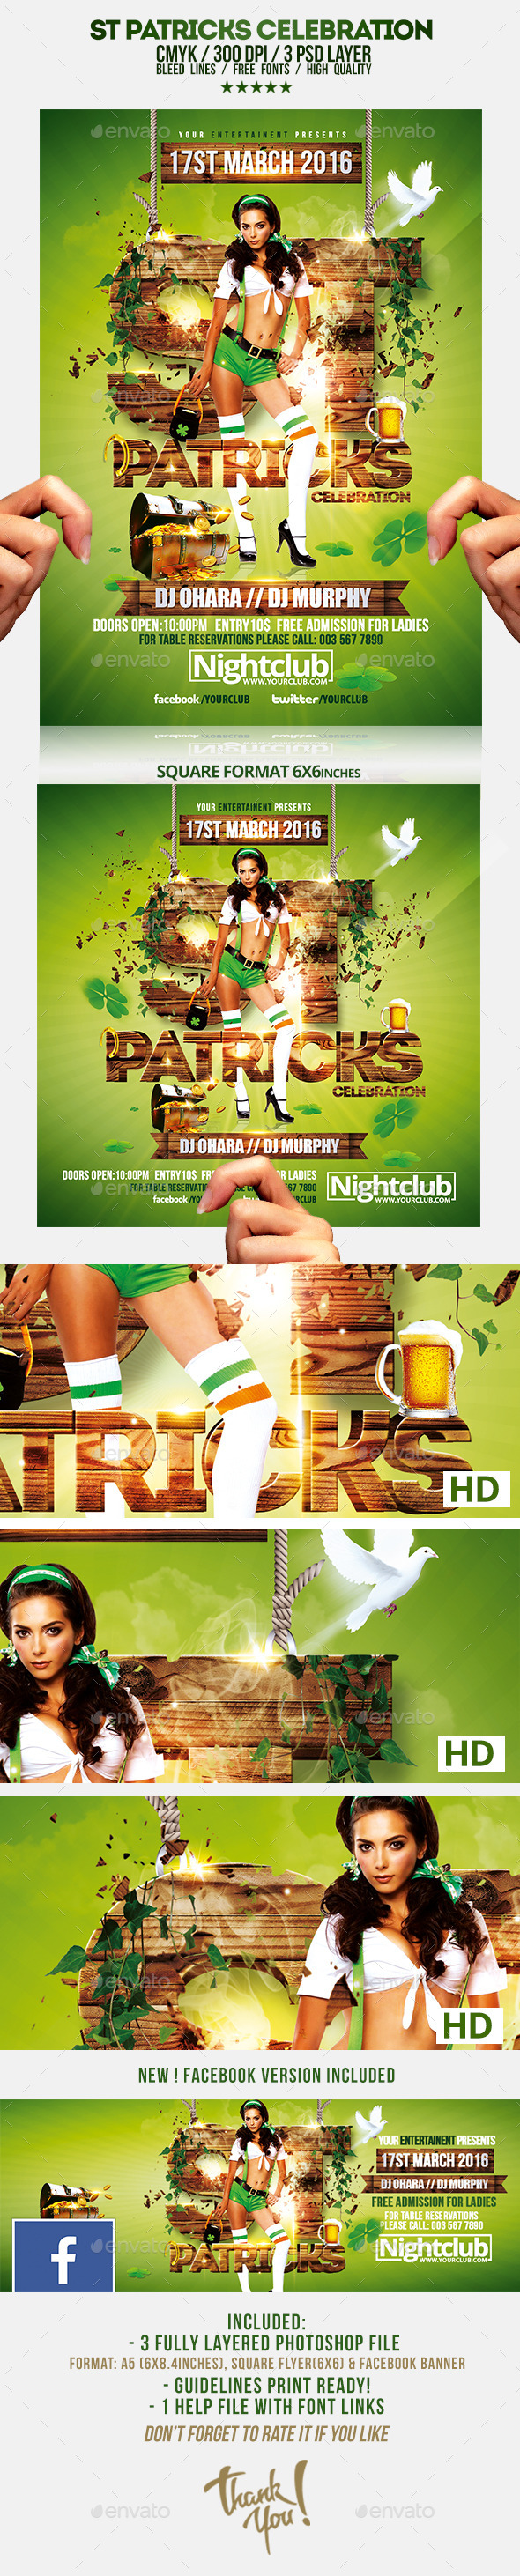 St Patricks Day Celebration Flyer Template - Clubs & Parties Events